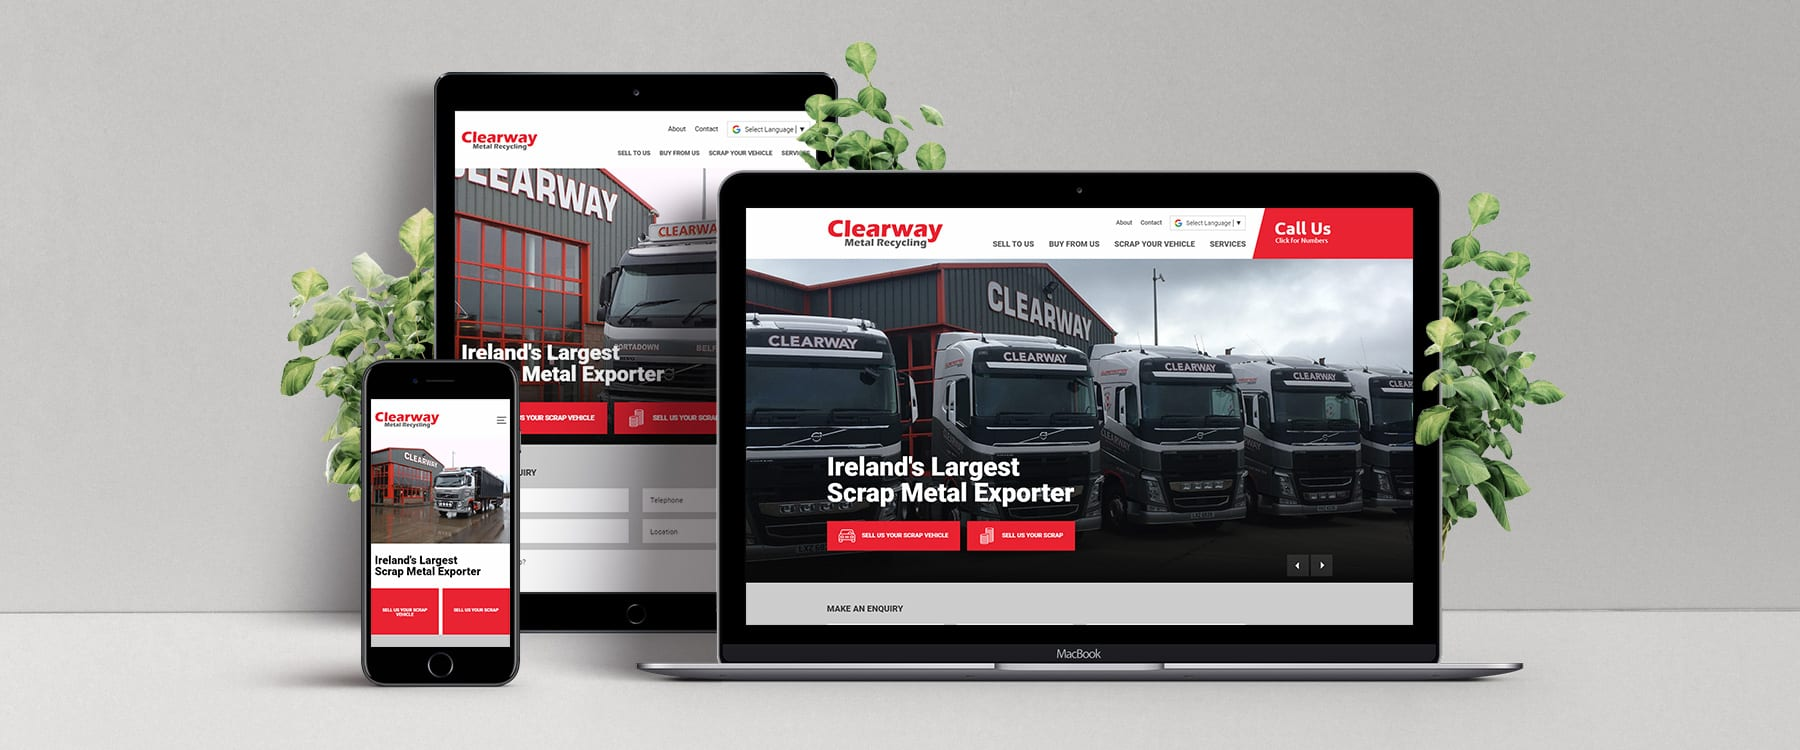 Website Redesign for Ireland's Largest Scrap Metal Exporter, Clearway Group Image